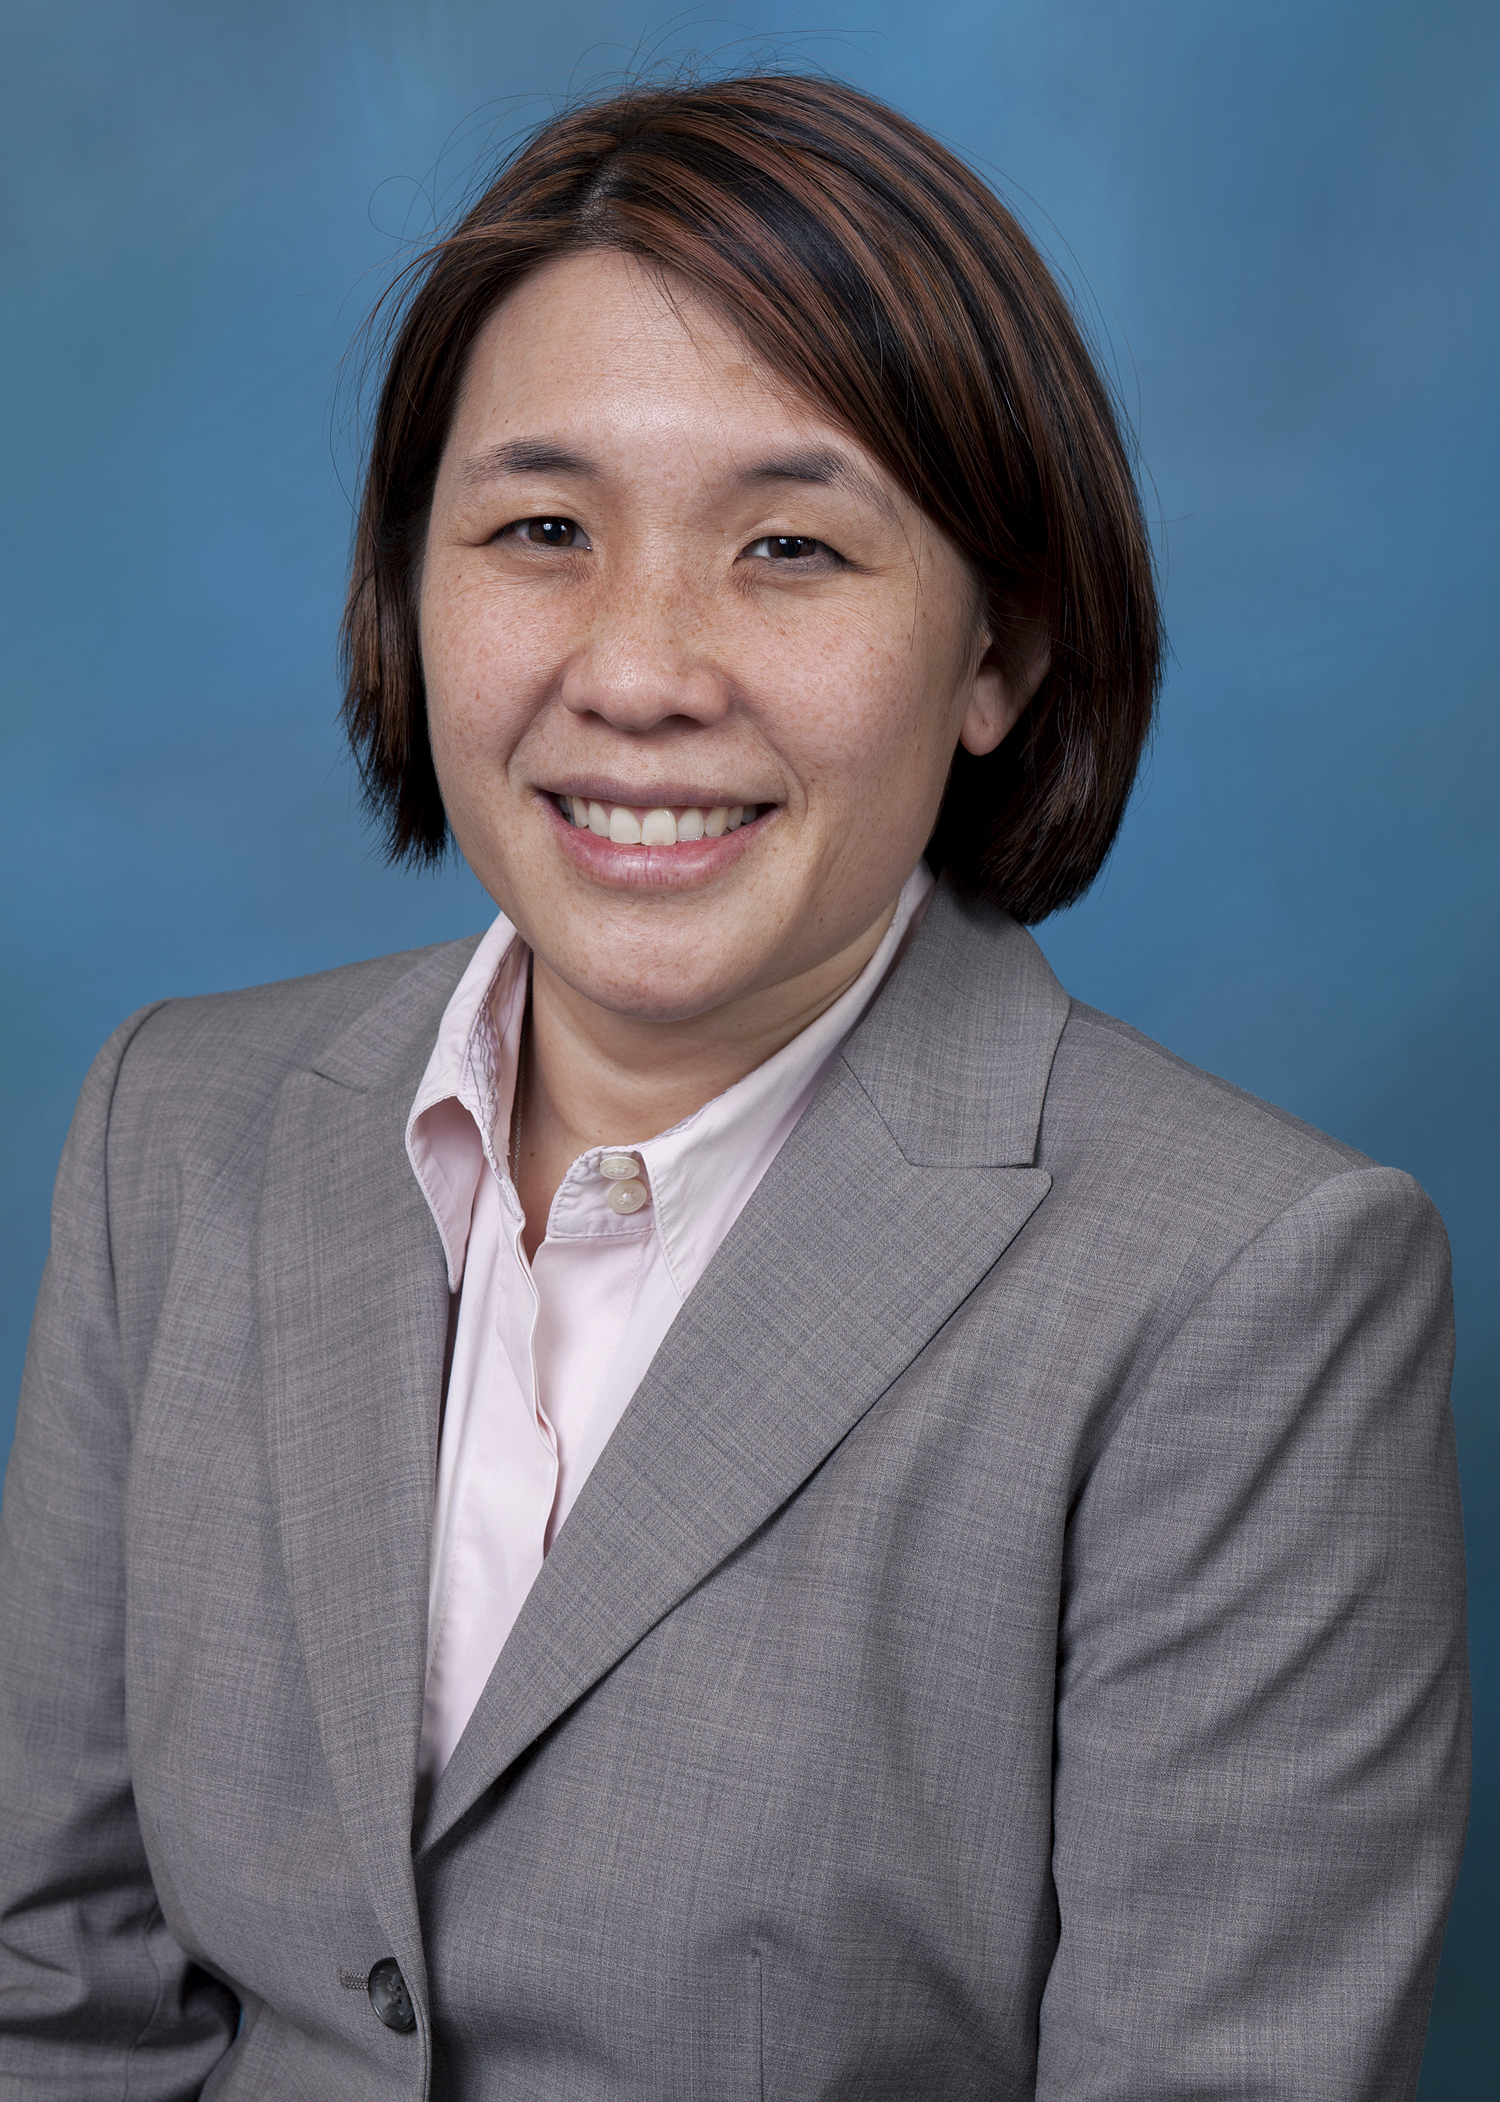 Christina Li, M.D., Division Head of Minimally Invasive Surgery at Sinai Hospital